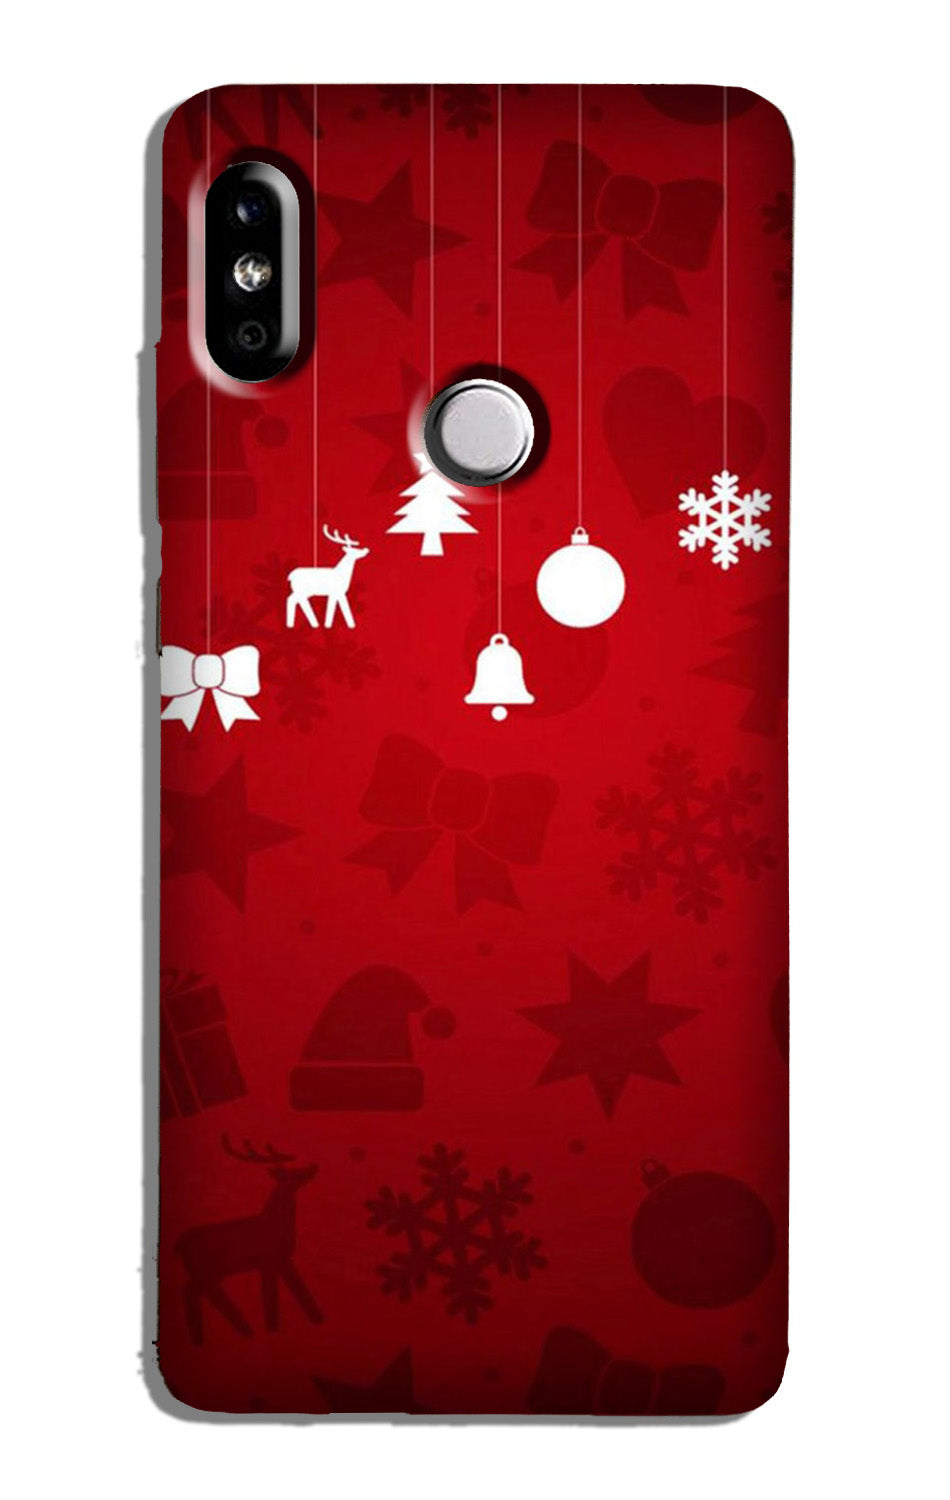 Christmas Case for Redmi Note 6 Pro